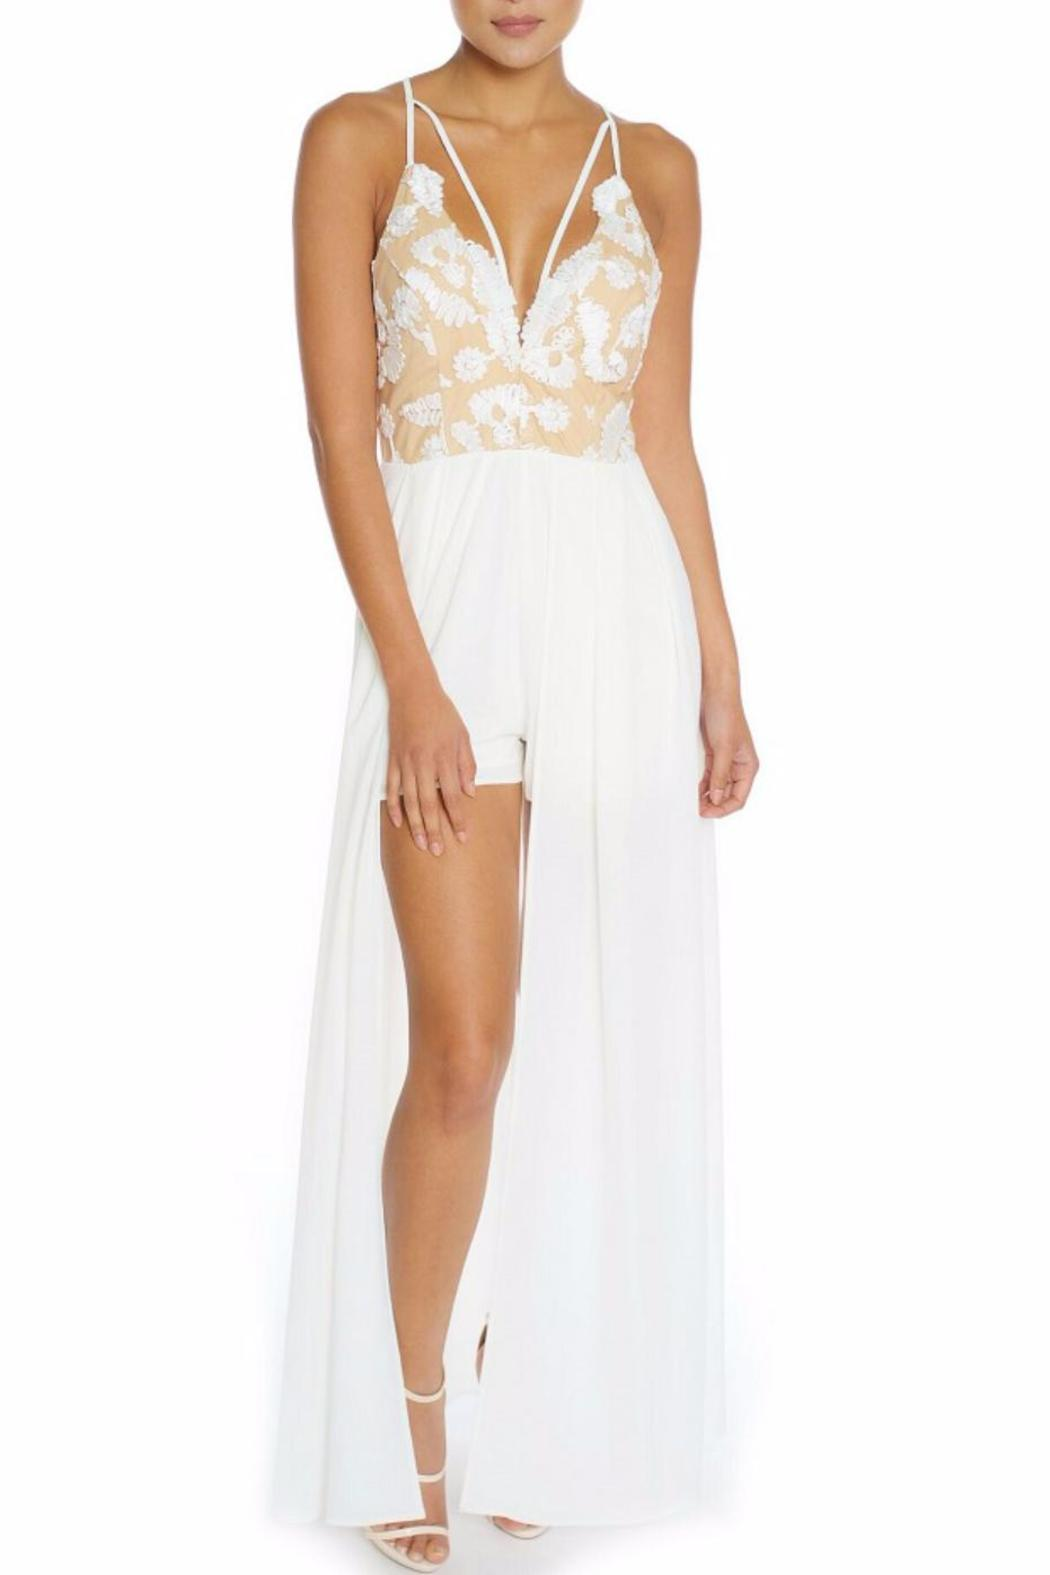 490b3404cae luxxel Maxi Romper from Orlando by Zingara Souls — Shoptiques